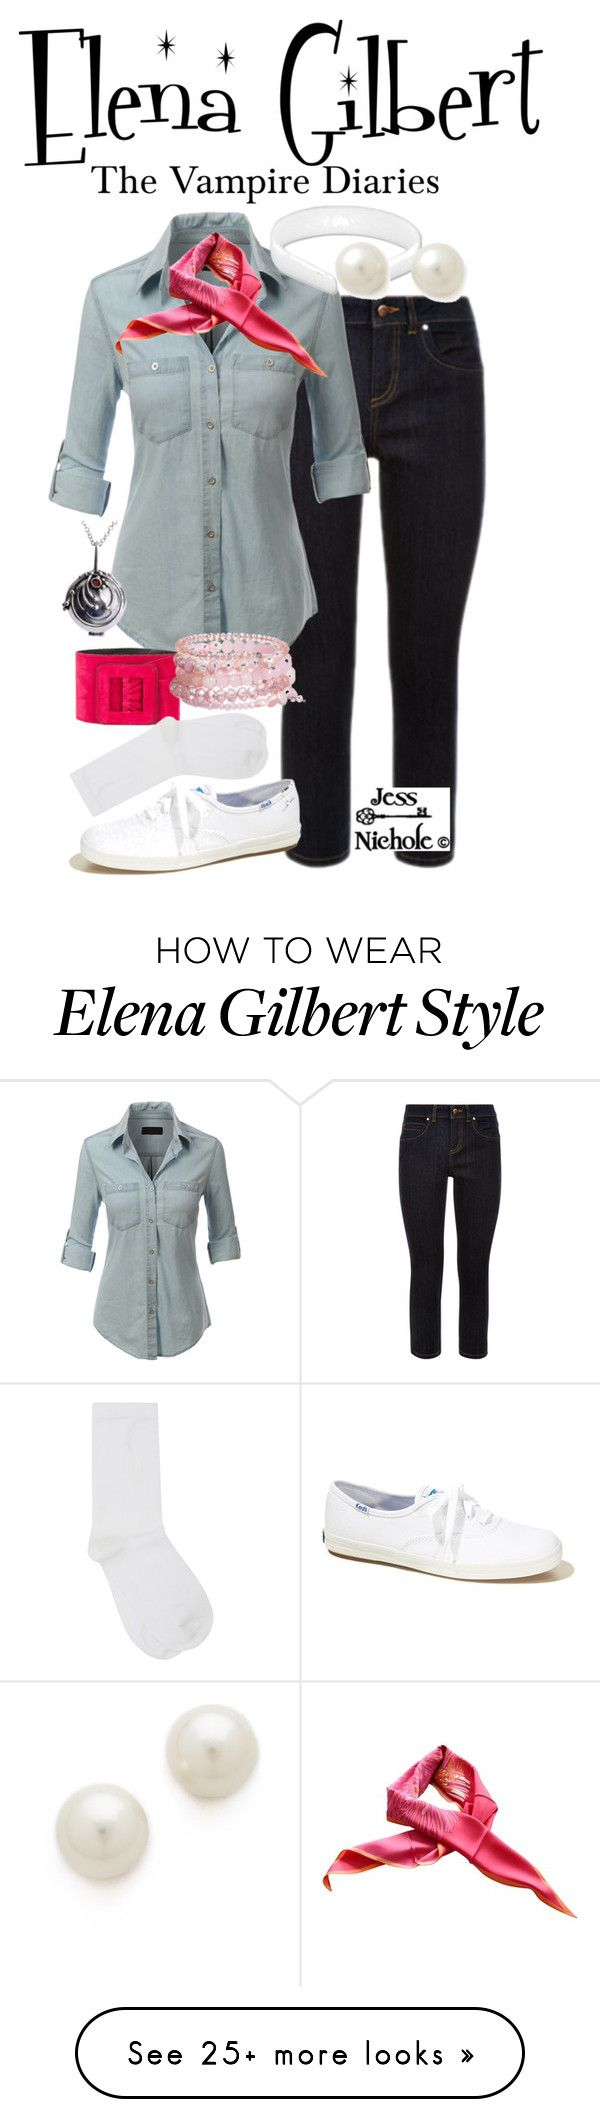 """""""Elena Gilbert"""" by jess-nichole on Polyvore featuring Monsoon, LE3NO, Kenneth Jay Lane, Yves Saint Laurent, Gucci, Hollister Co., David Charles and M&Co"""